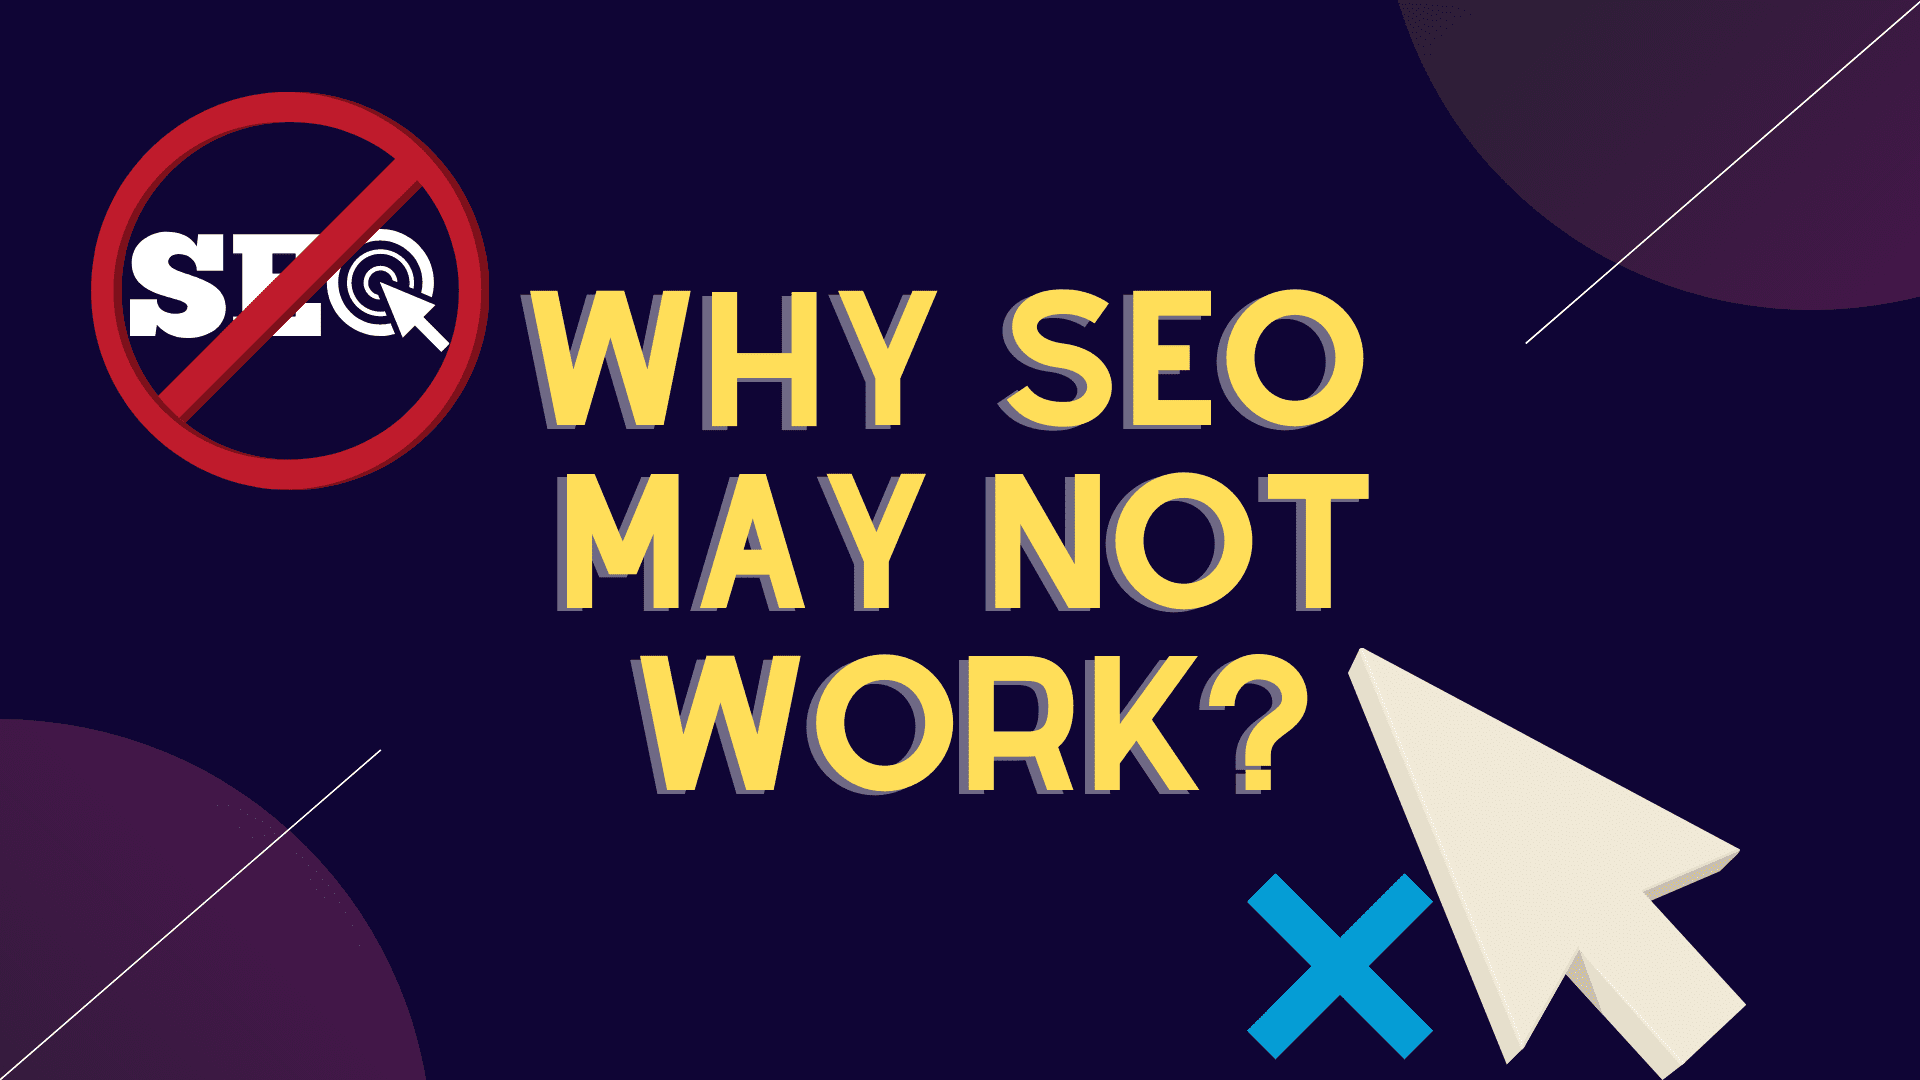 WHY SEO MAY NOT WORK (2)